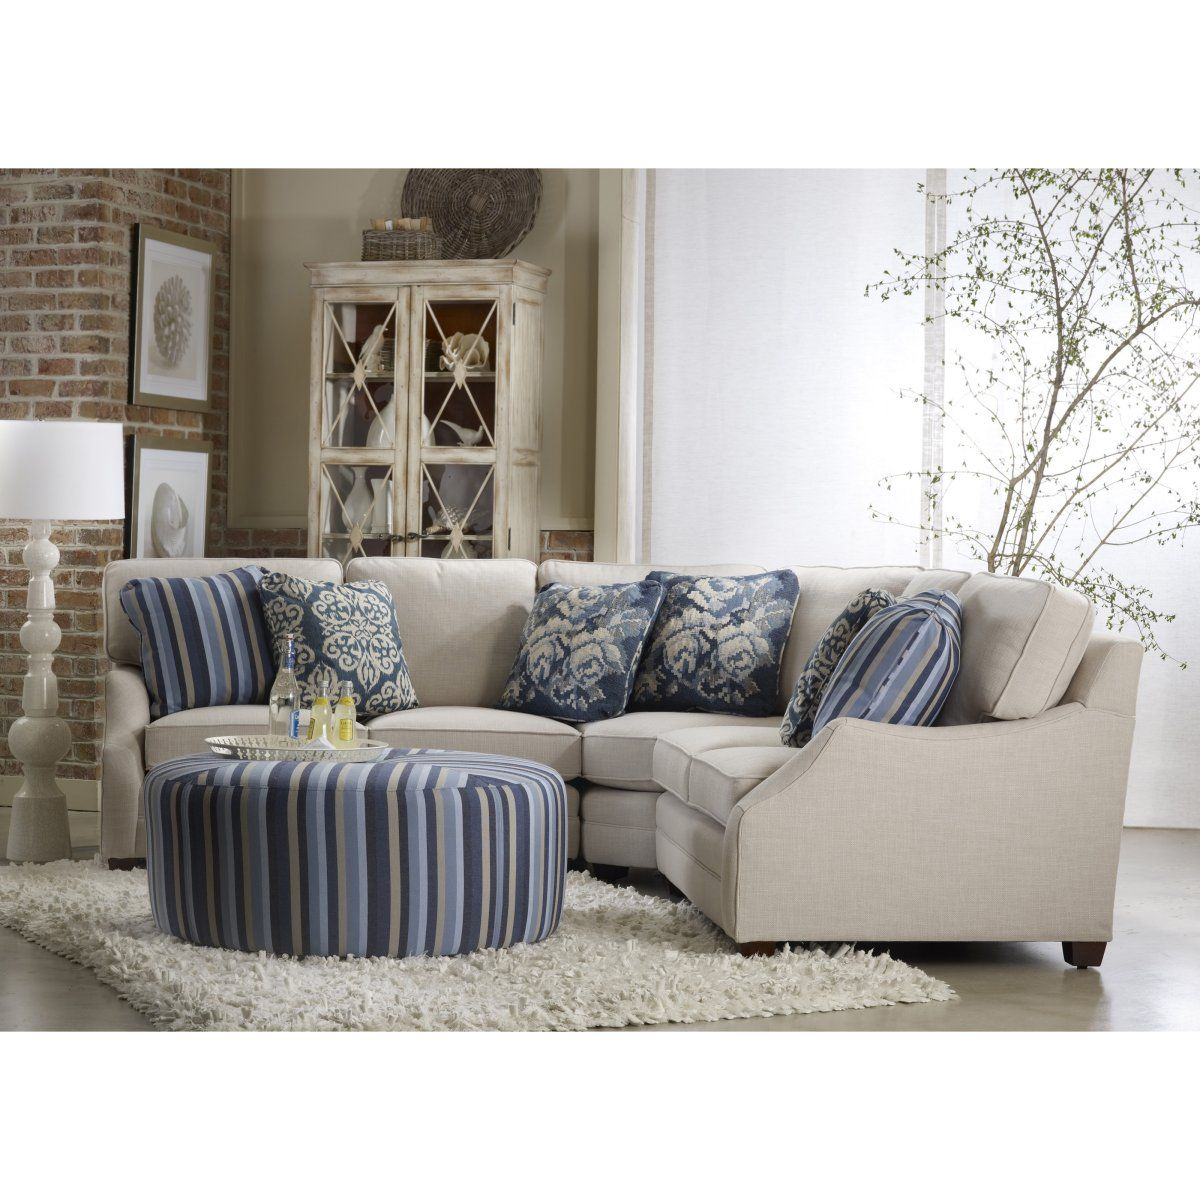 Best Sam Moore Rita Sectional With Ottoman Small Reclining 400 x 300